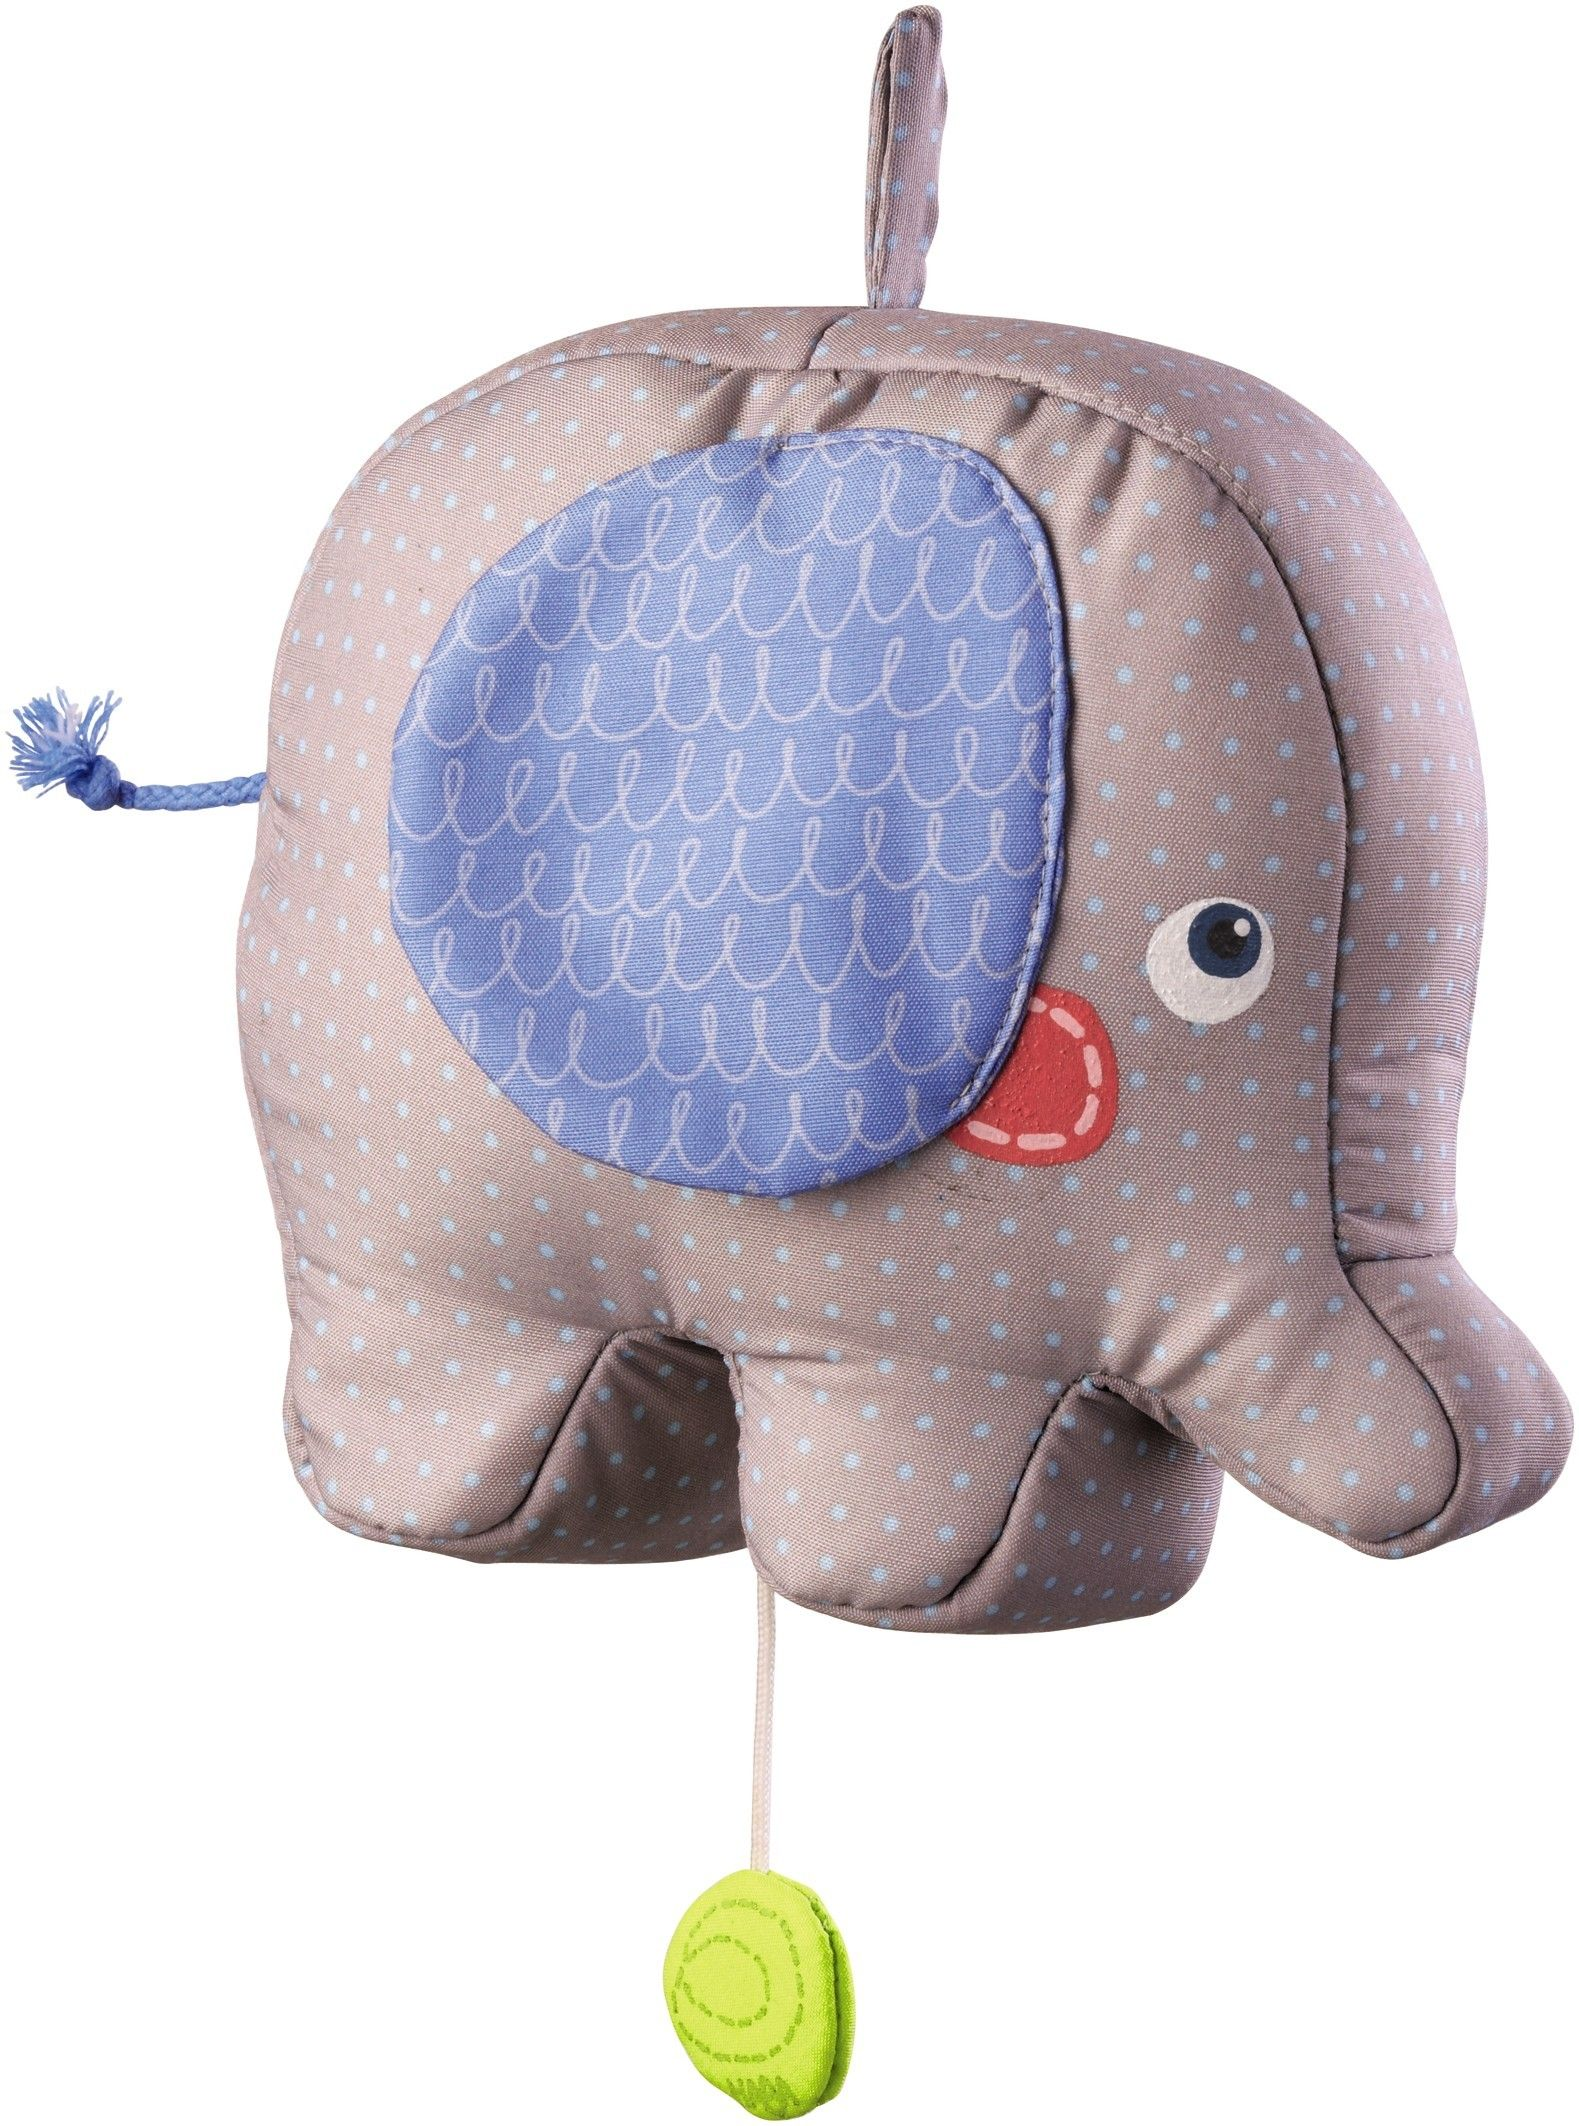 Elephant Egon Musical Box - Infant Crib Toy